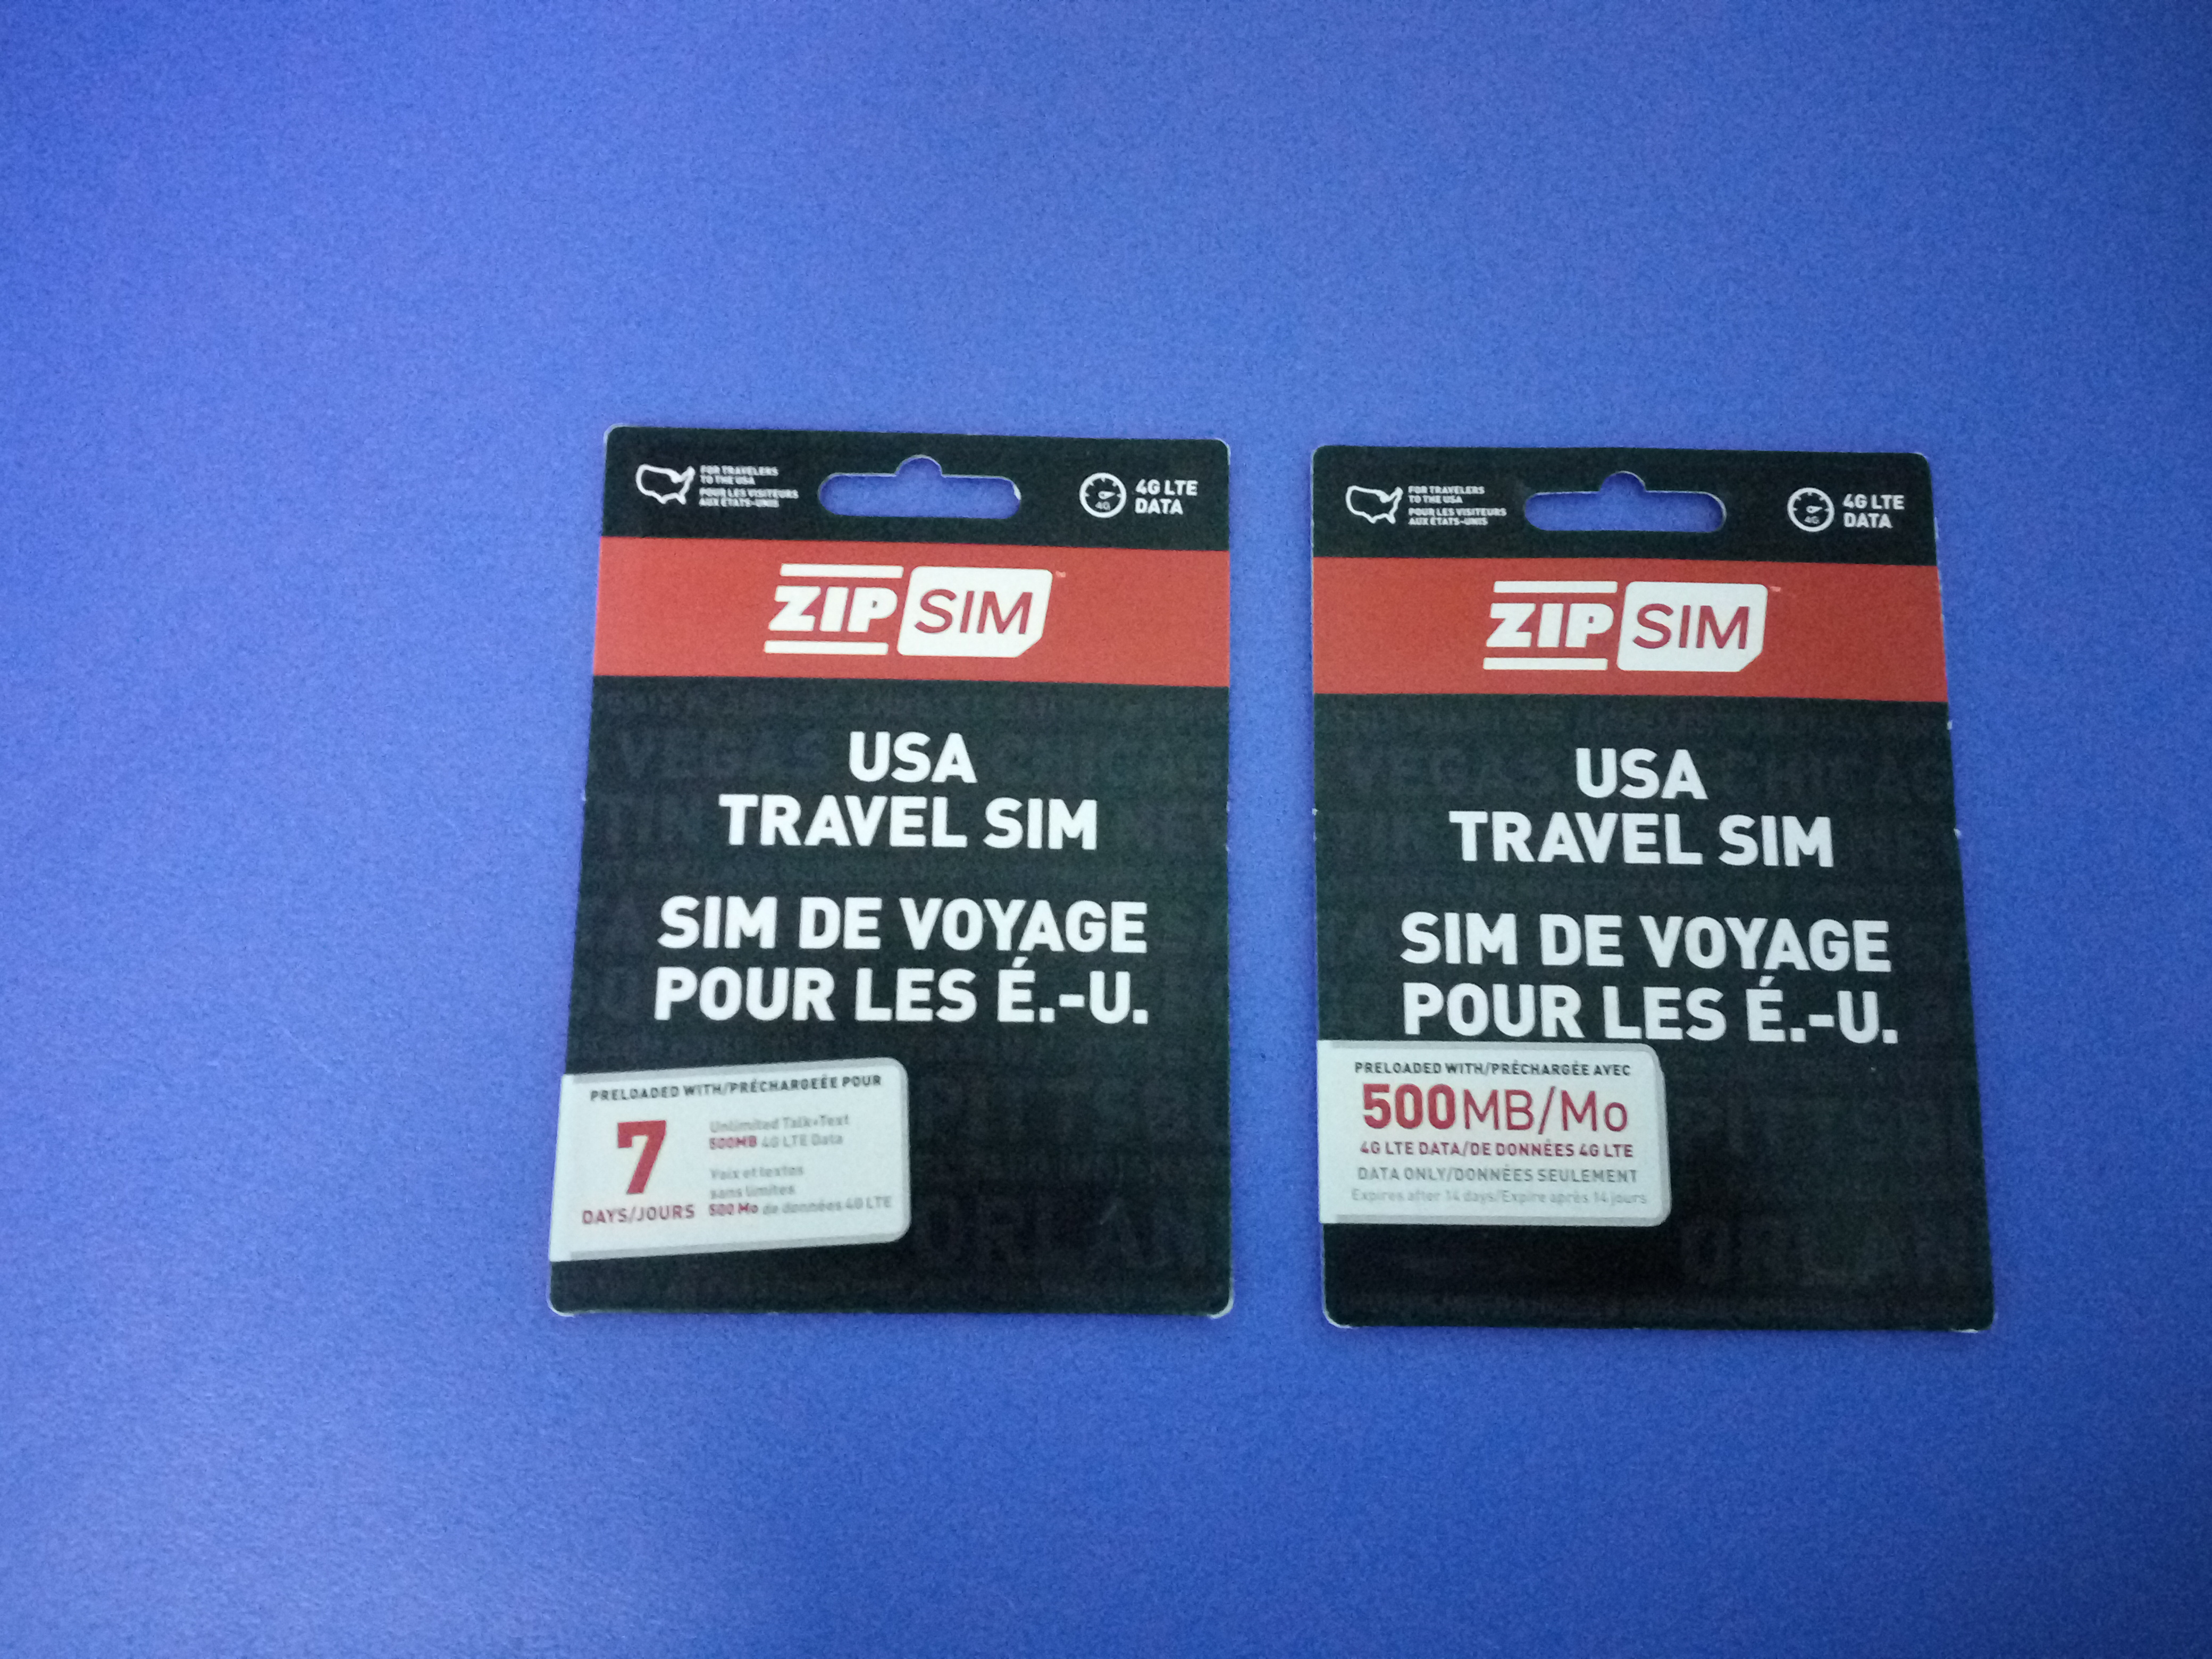 ZIP SIM Review: Seamless connectivity throughout United States